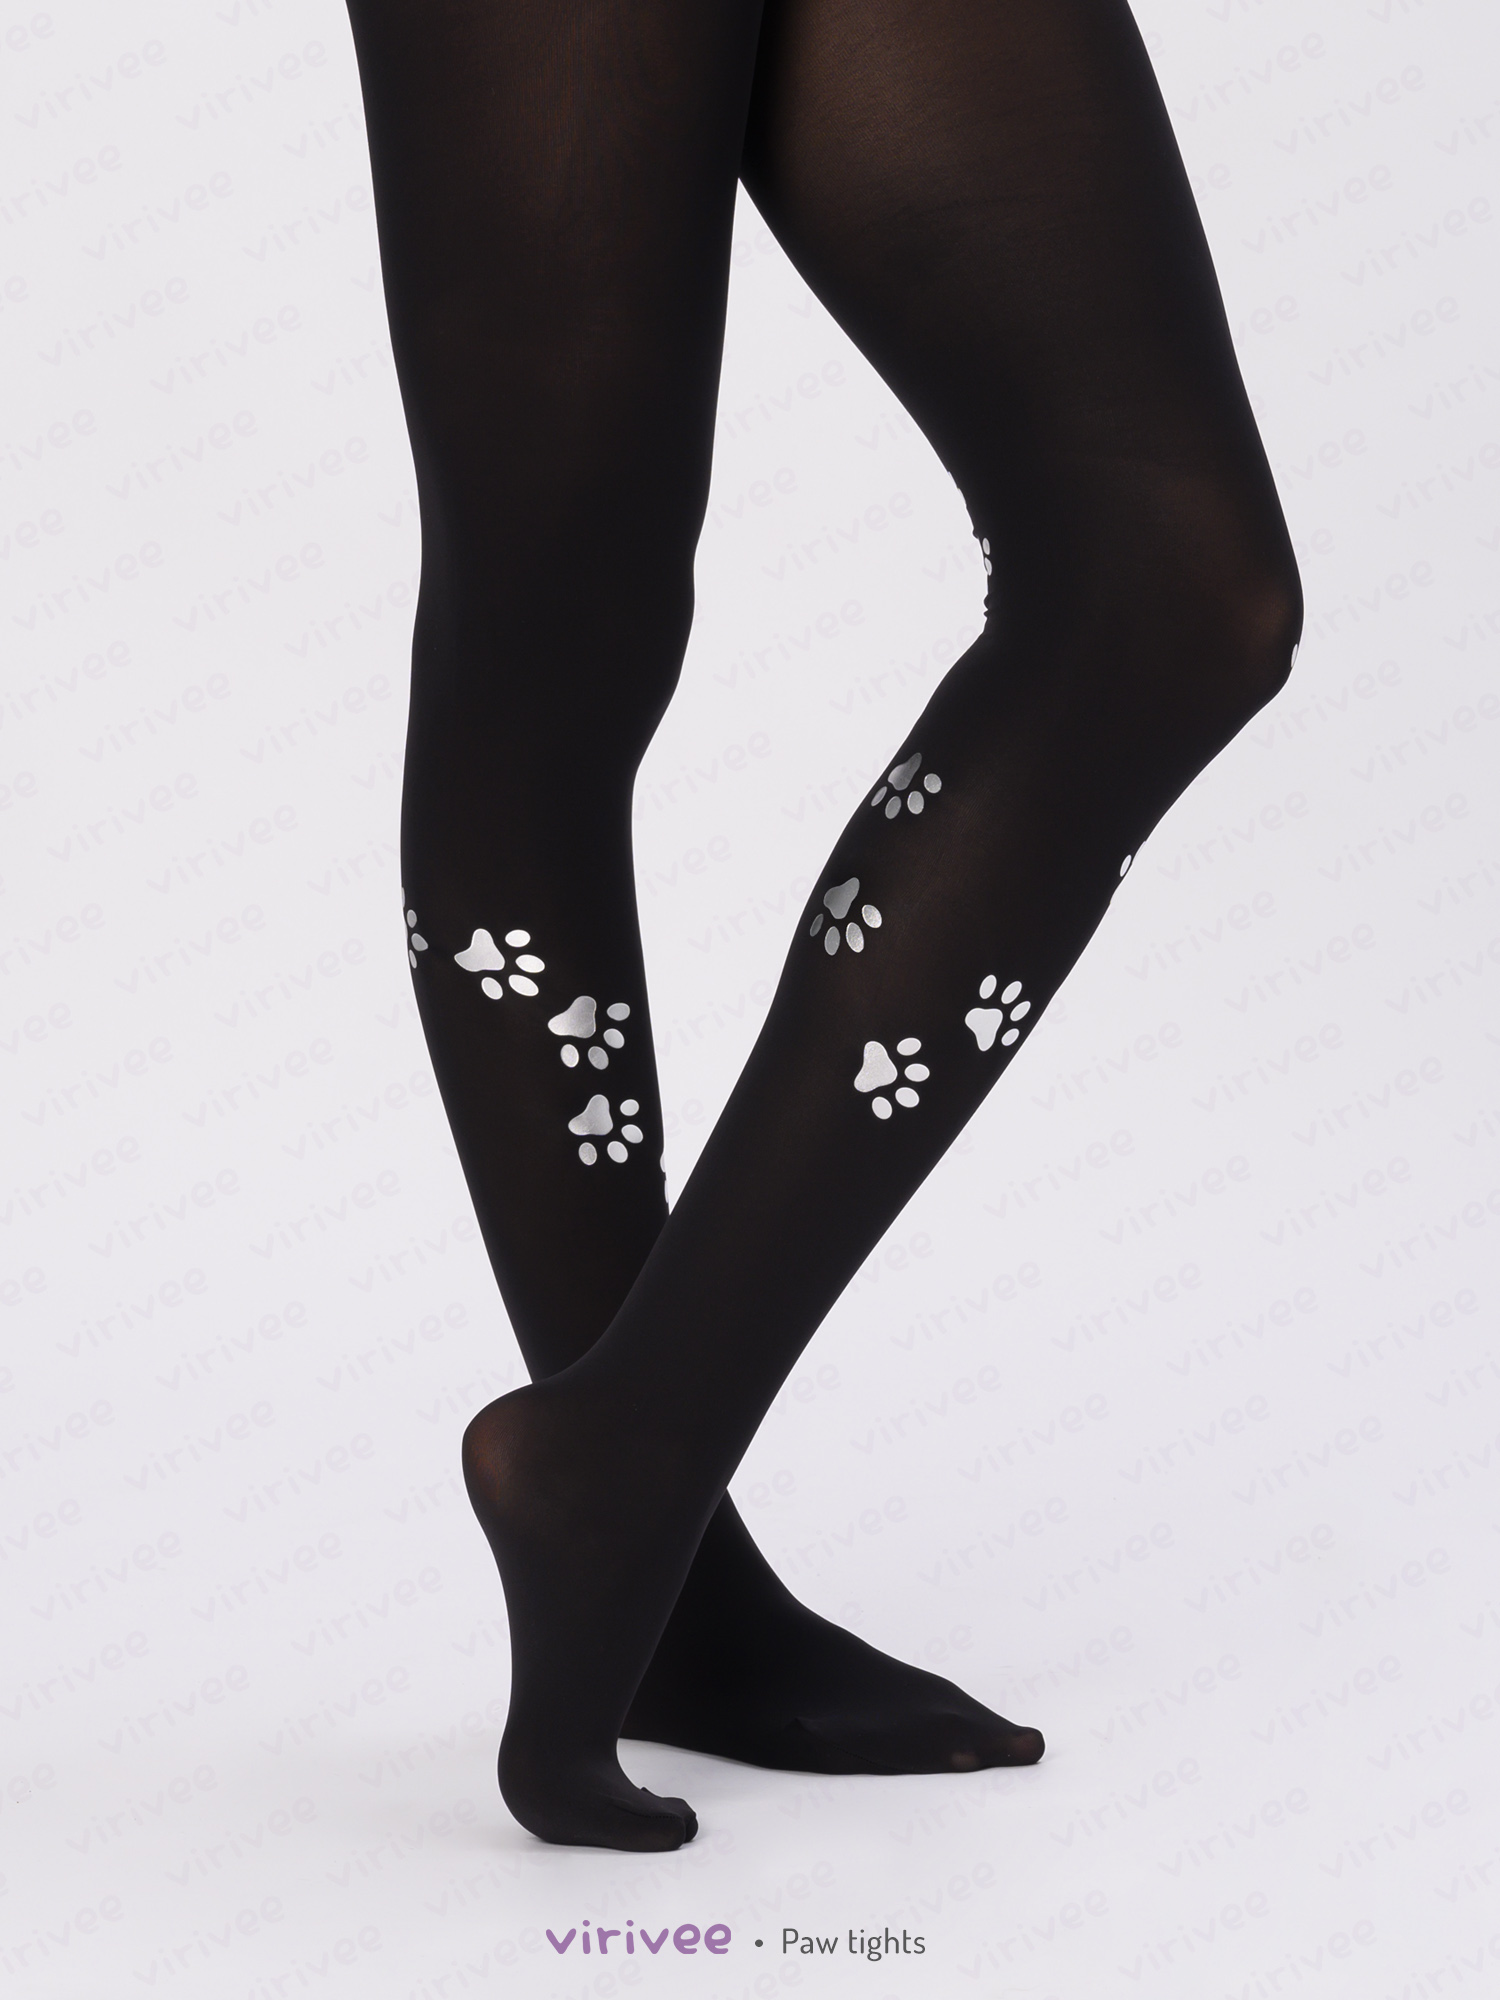 Tights with cat paw print